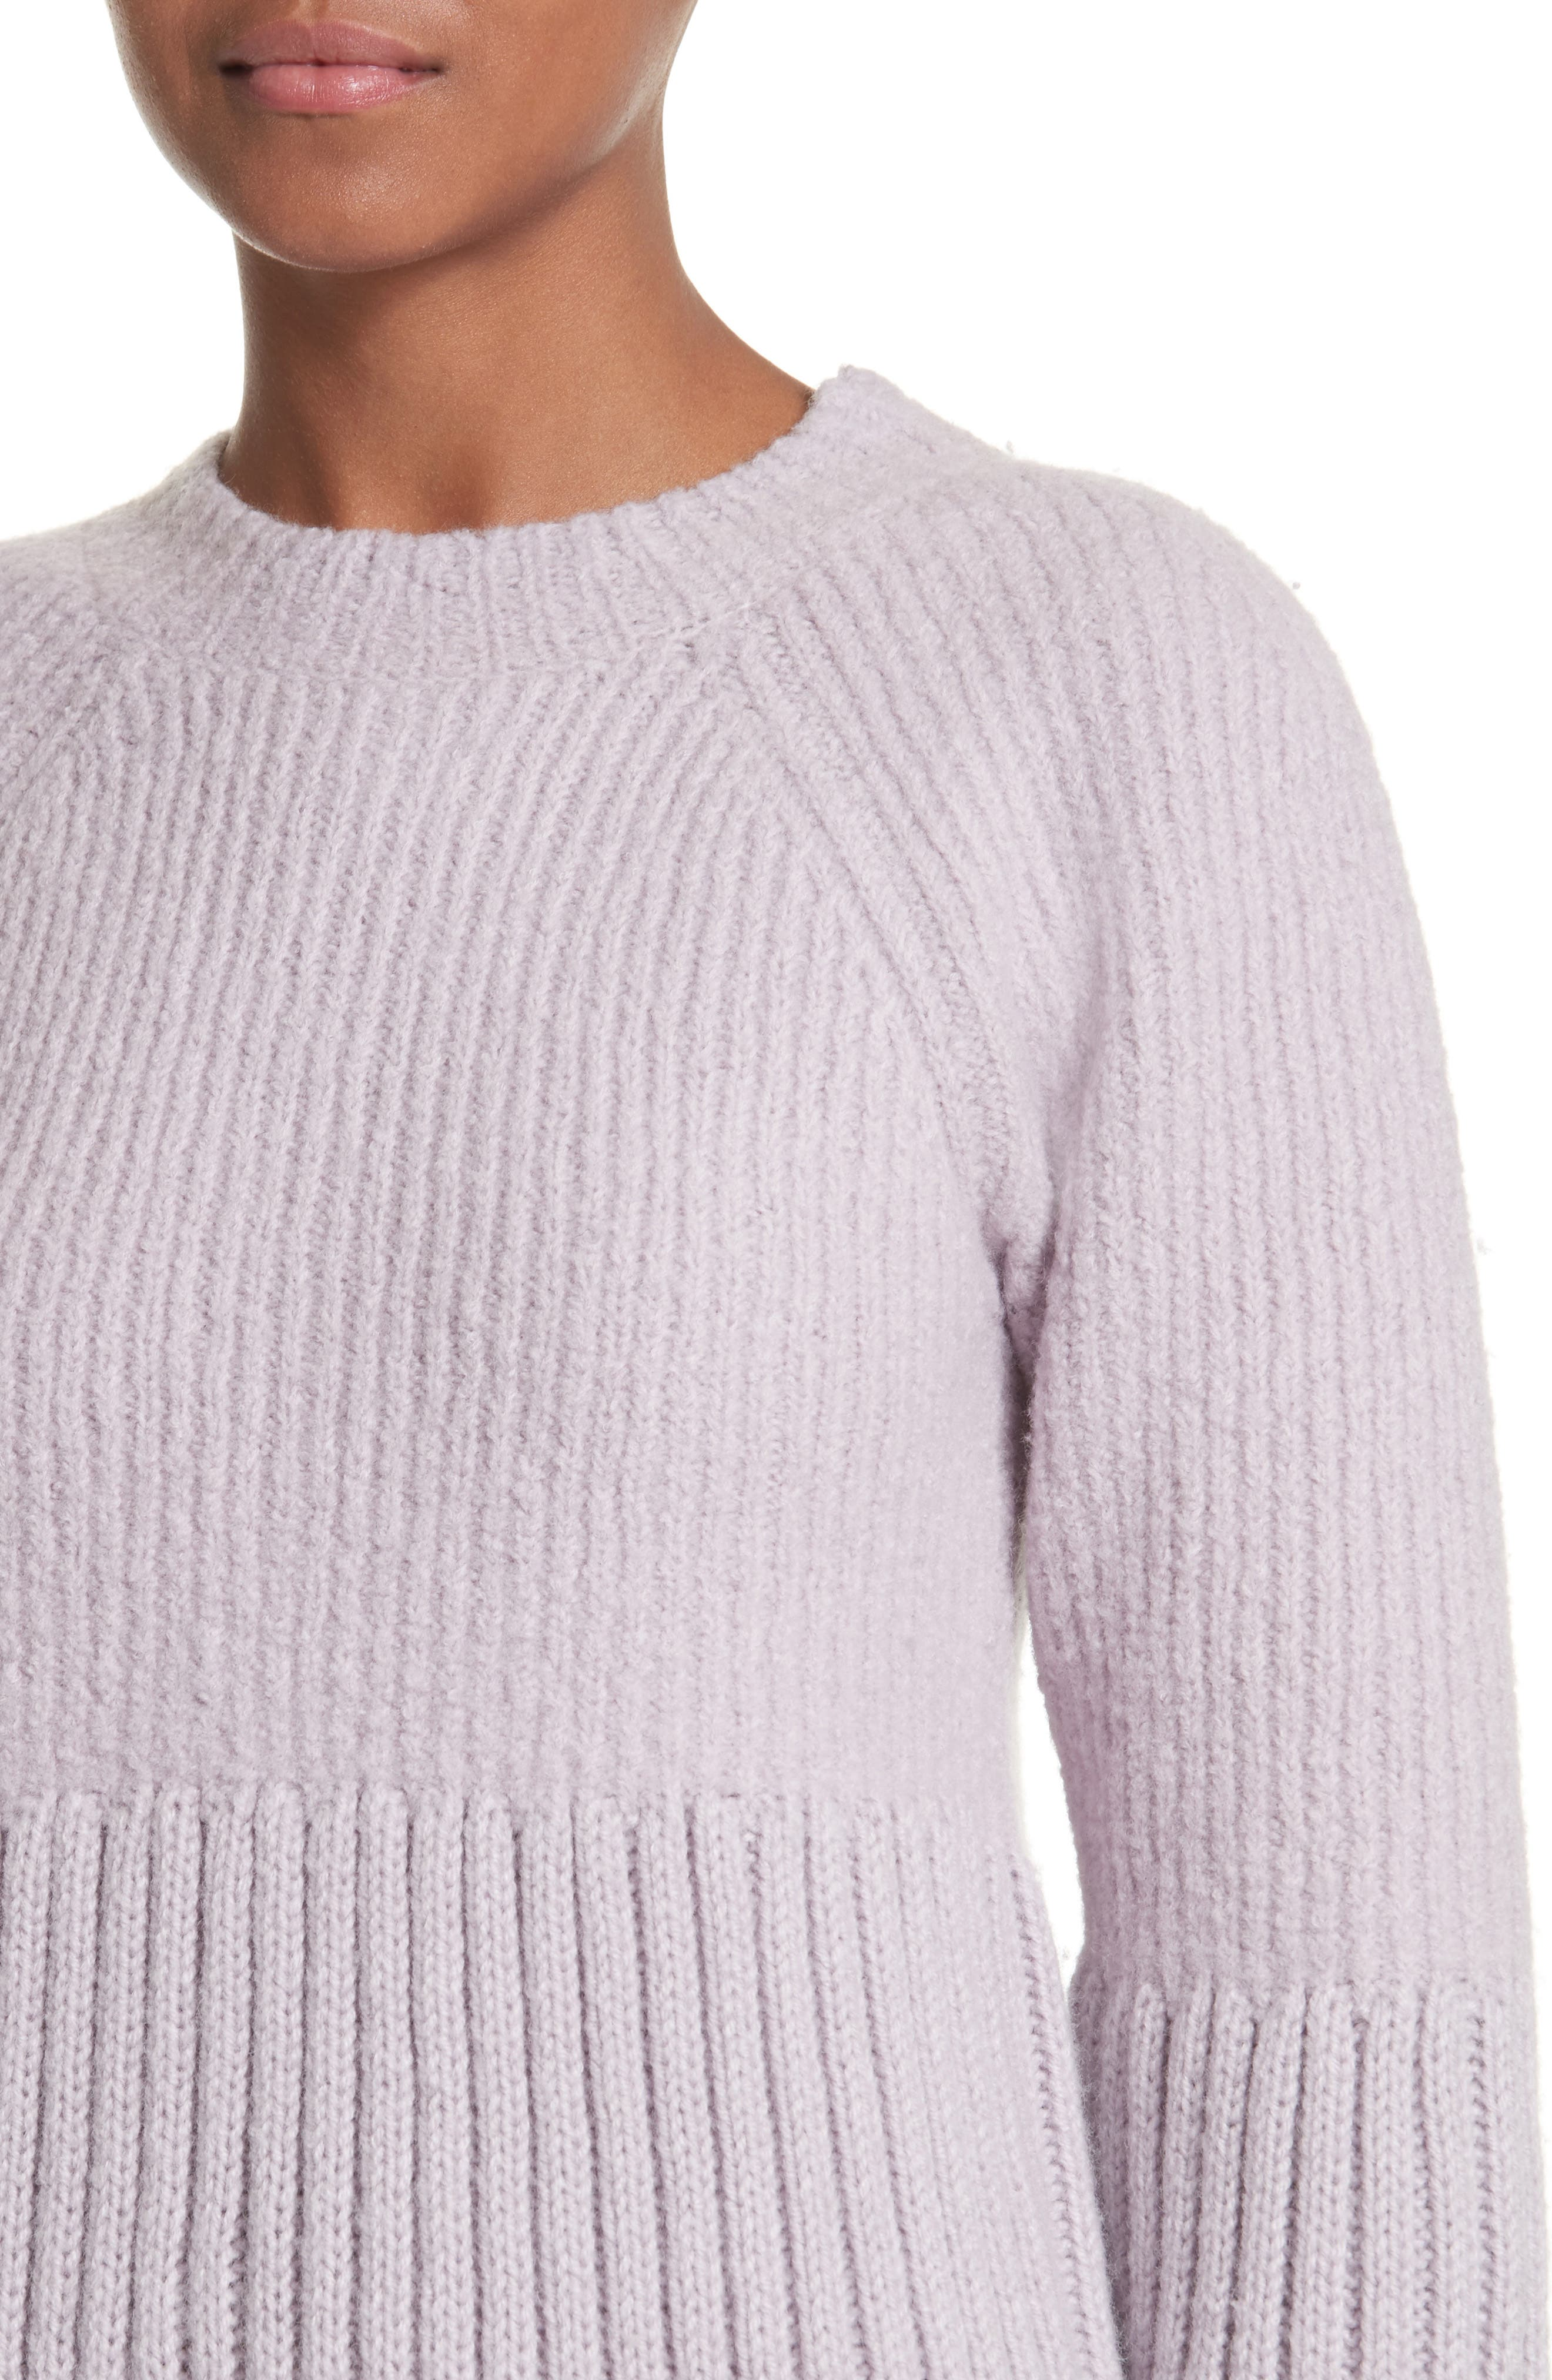 Wool Tunic Sweater,                             Alternate thumbnail 4, color,                             500